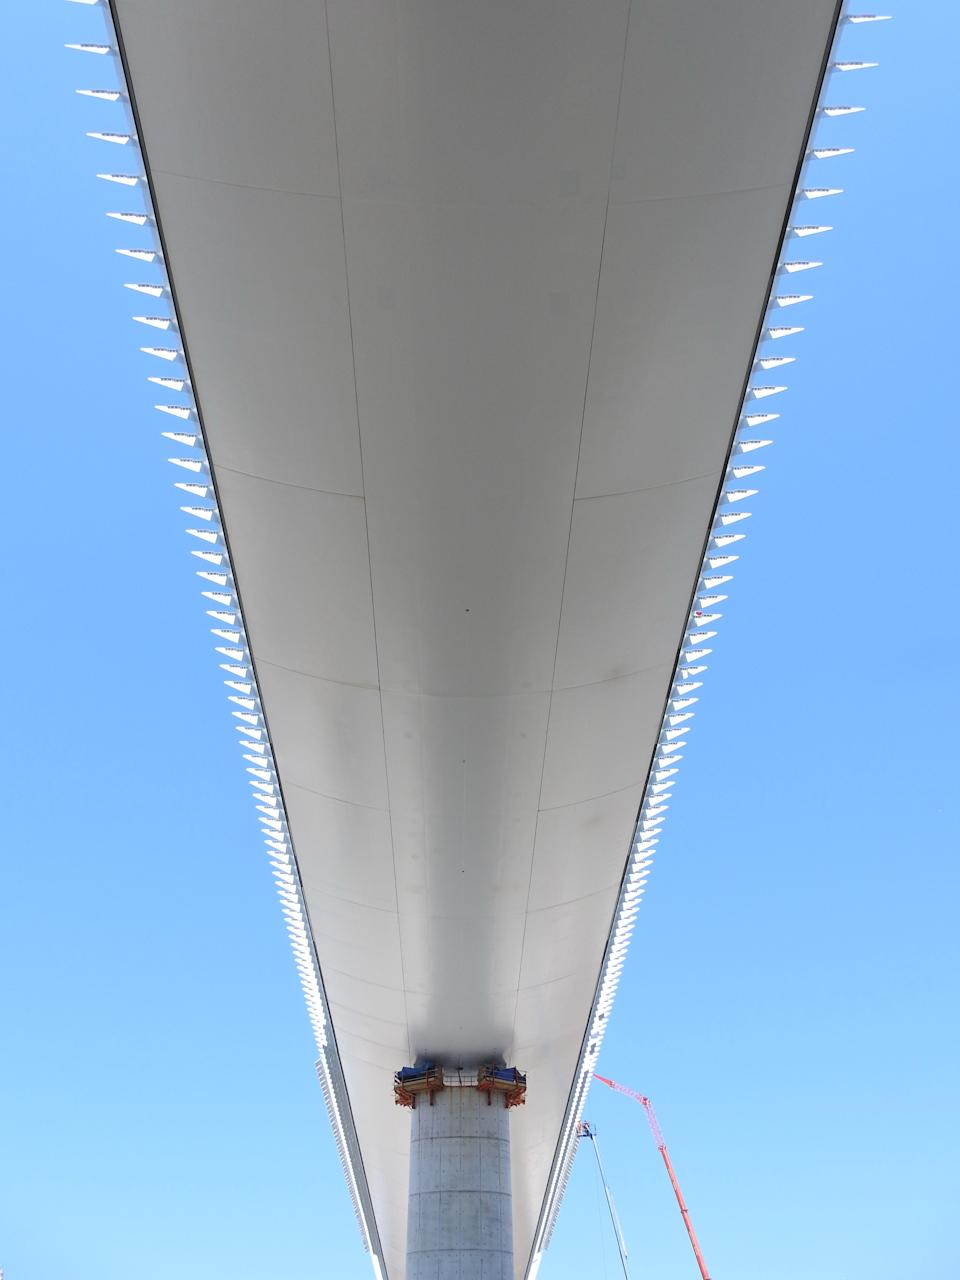 """<div class=""""caption""""> Piano designed the bridge to look like the curved hull of a ship when viewed from beneath. </div> <cite class=""""credit"""">Photo: Shunji Ishida</cite>"""